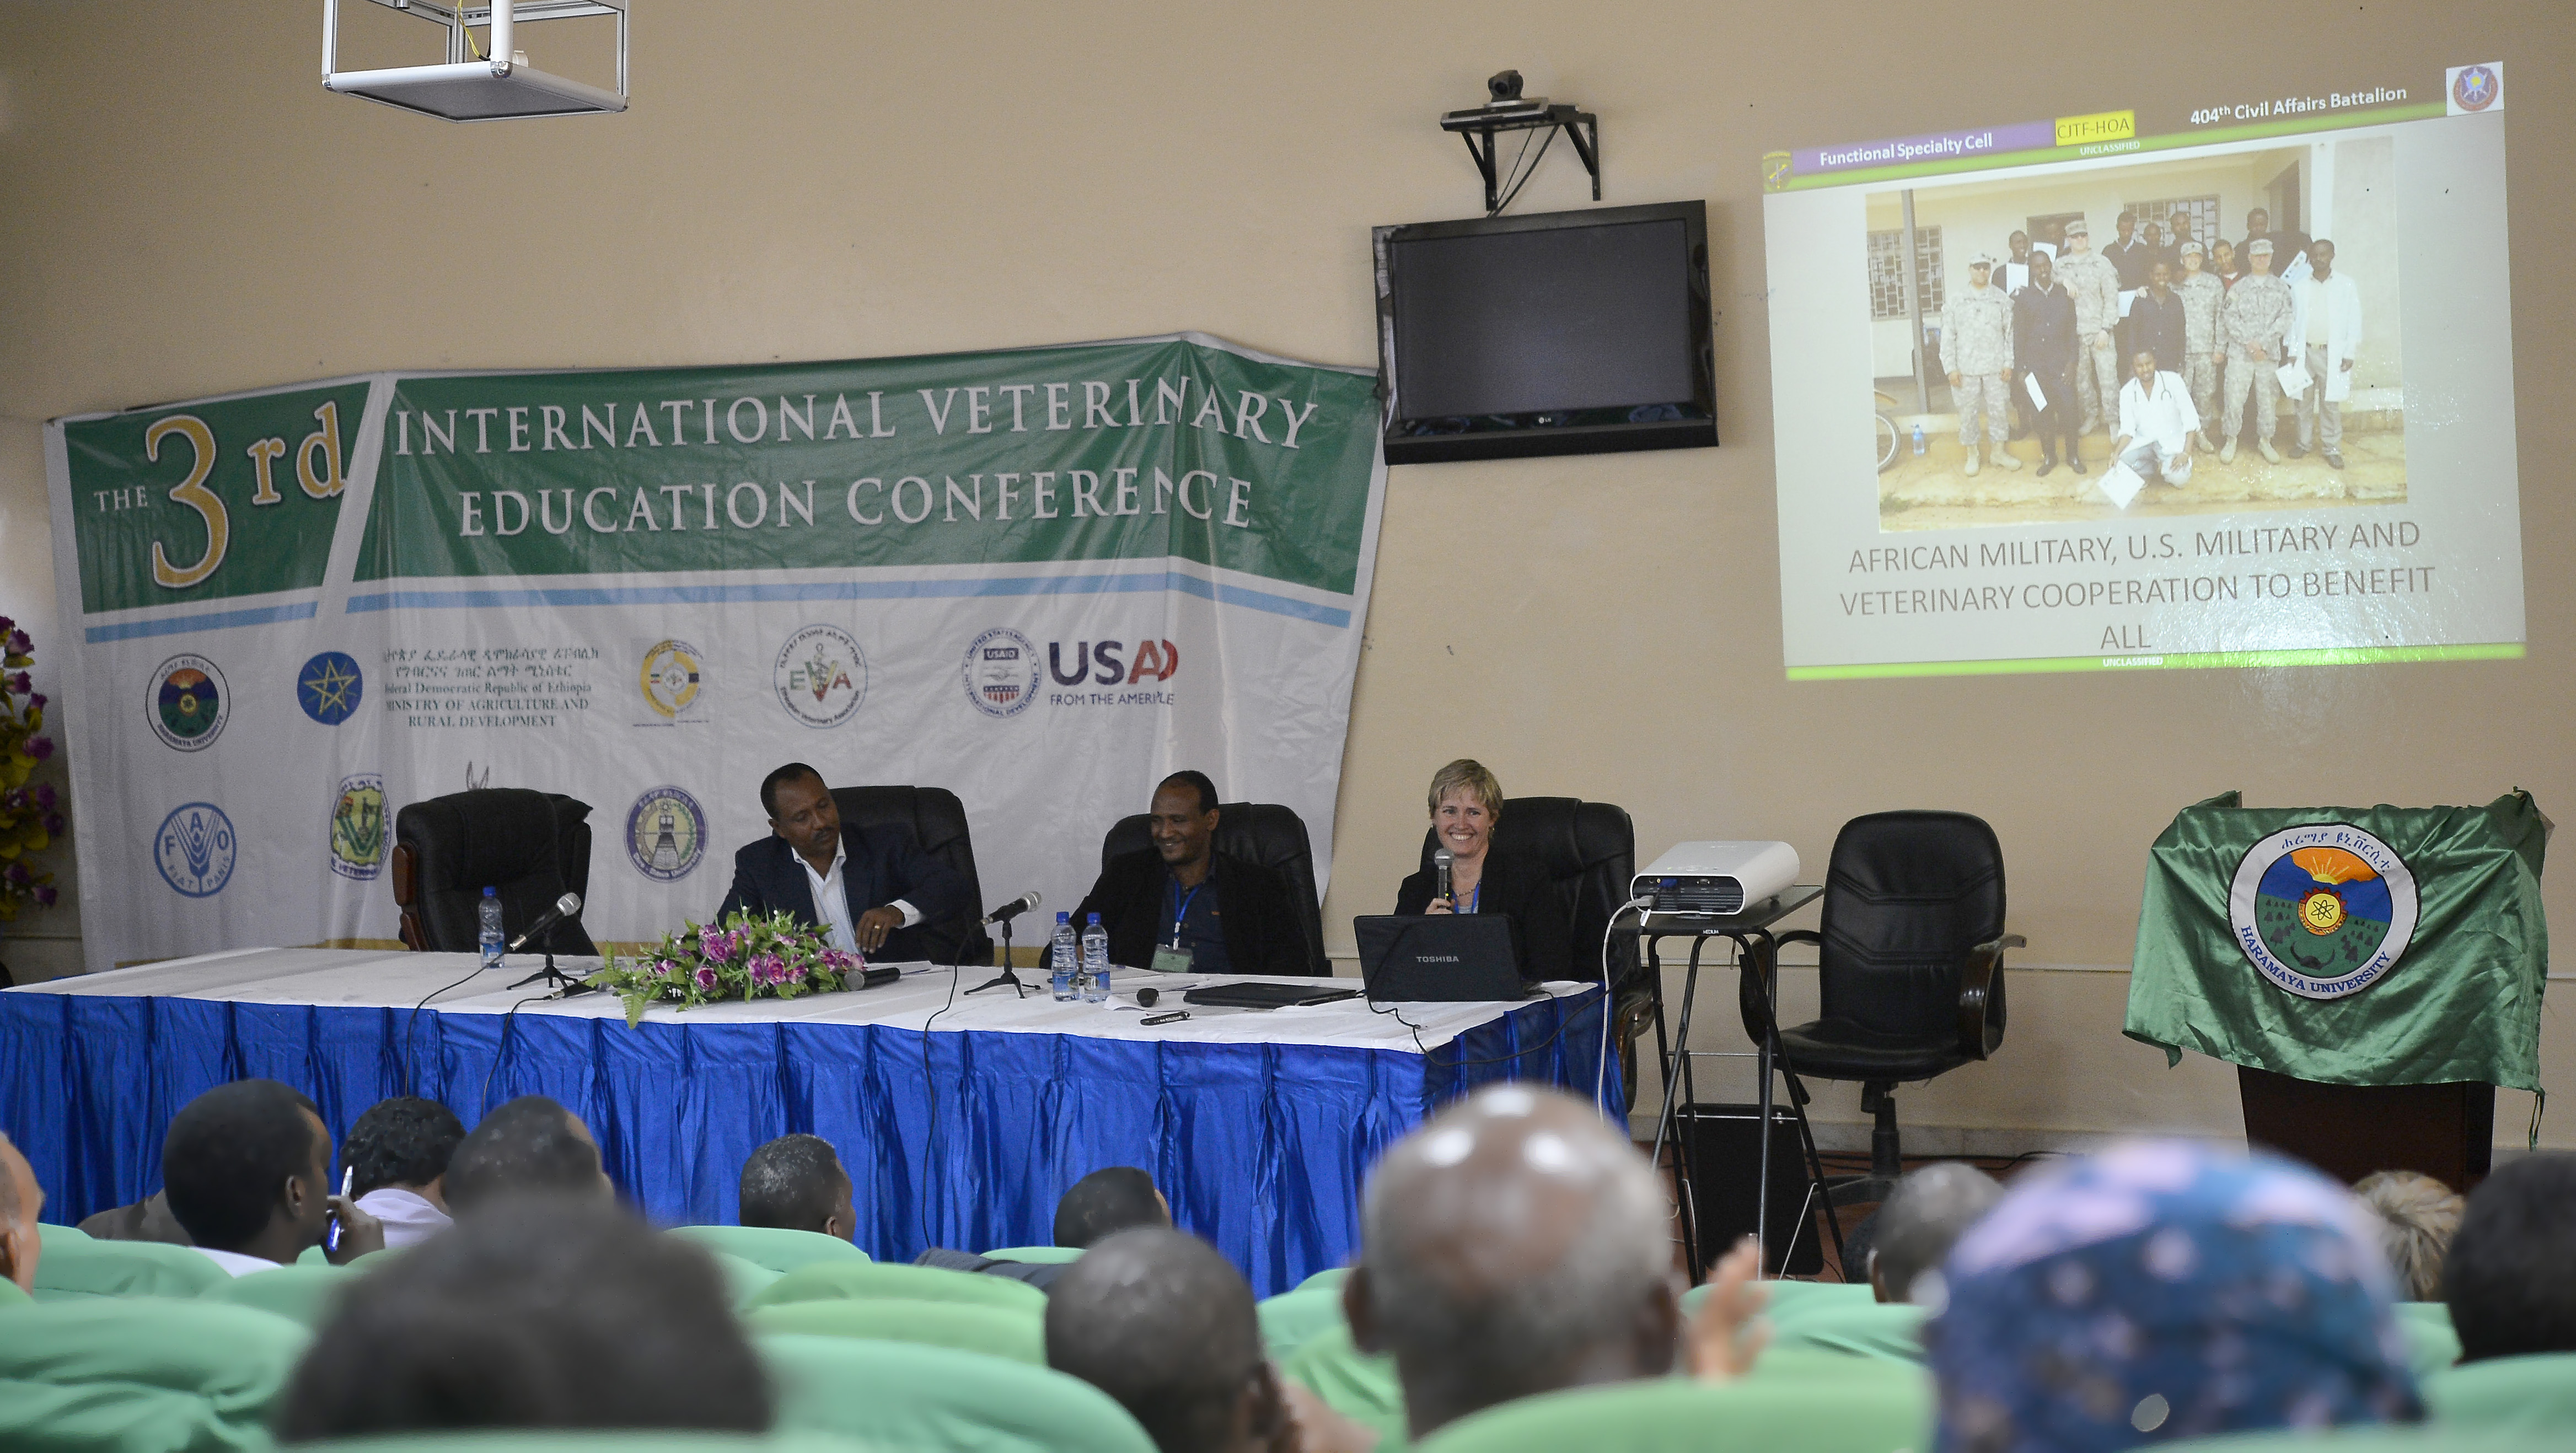 U.S. Army Lt. Col. Patricia Rasmussen, 404th Civil Affairs Battalion veterinarian, briefs during the Third International Veterinary Education Conference at Haramaya University in Ethiopia, June 18, 2015. The CA team spoke about maximizing and leveraging veterinary assets to increase capacity in resource limited regions. (U.S. Air Force photo by. Senior Airman Nesha Humes)